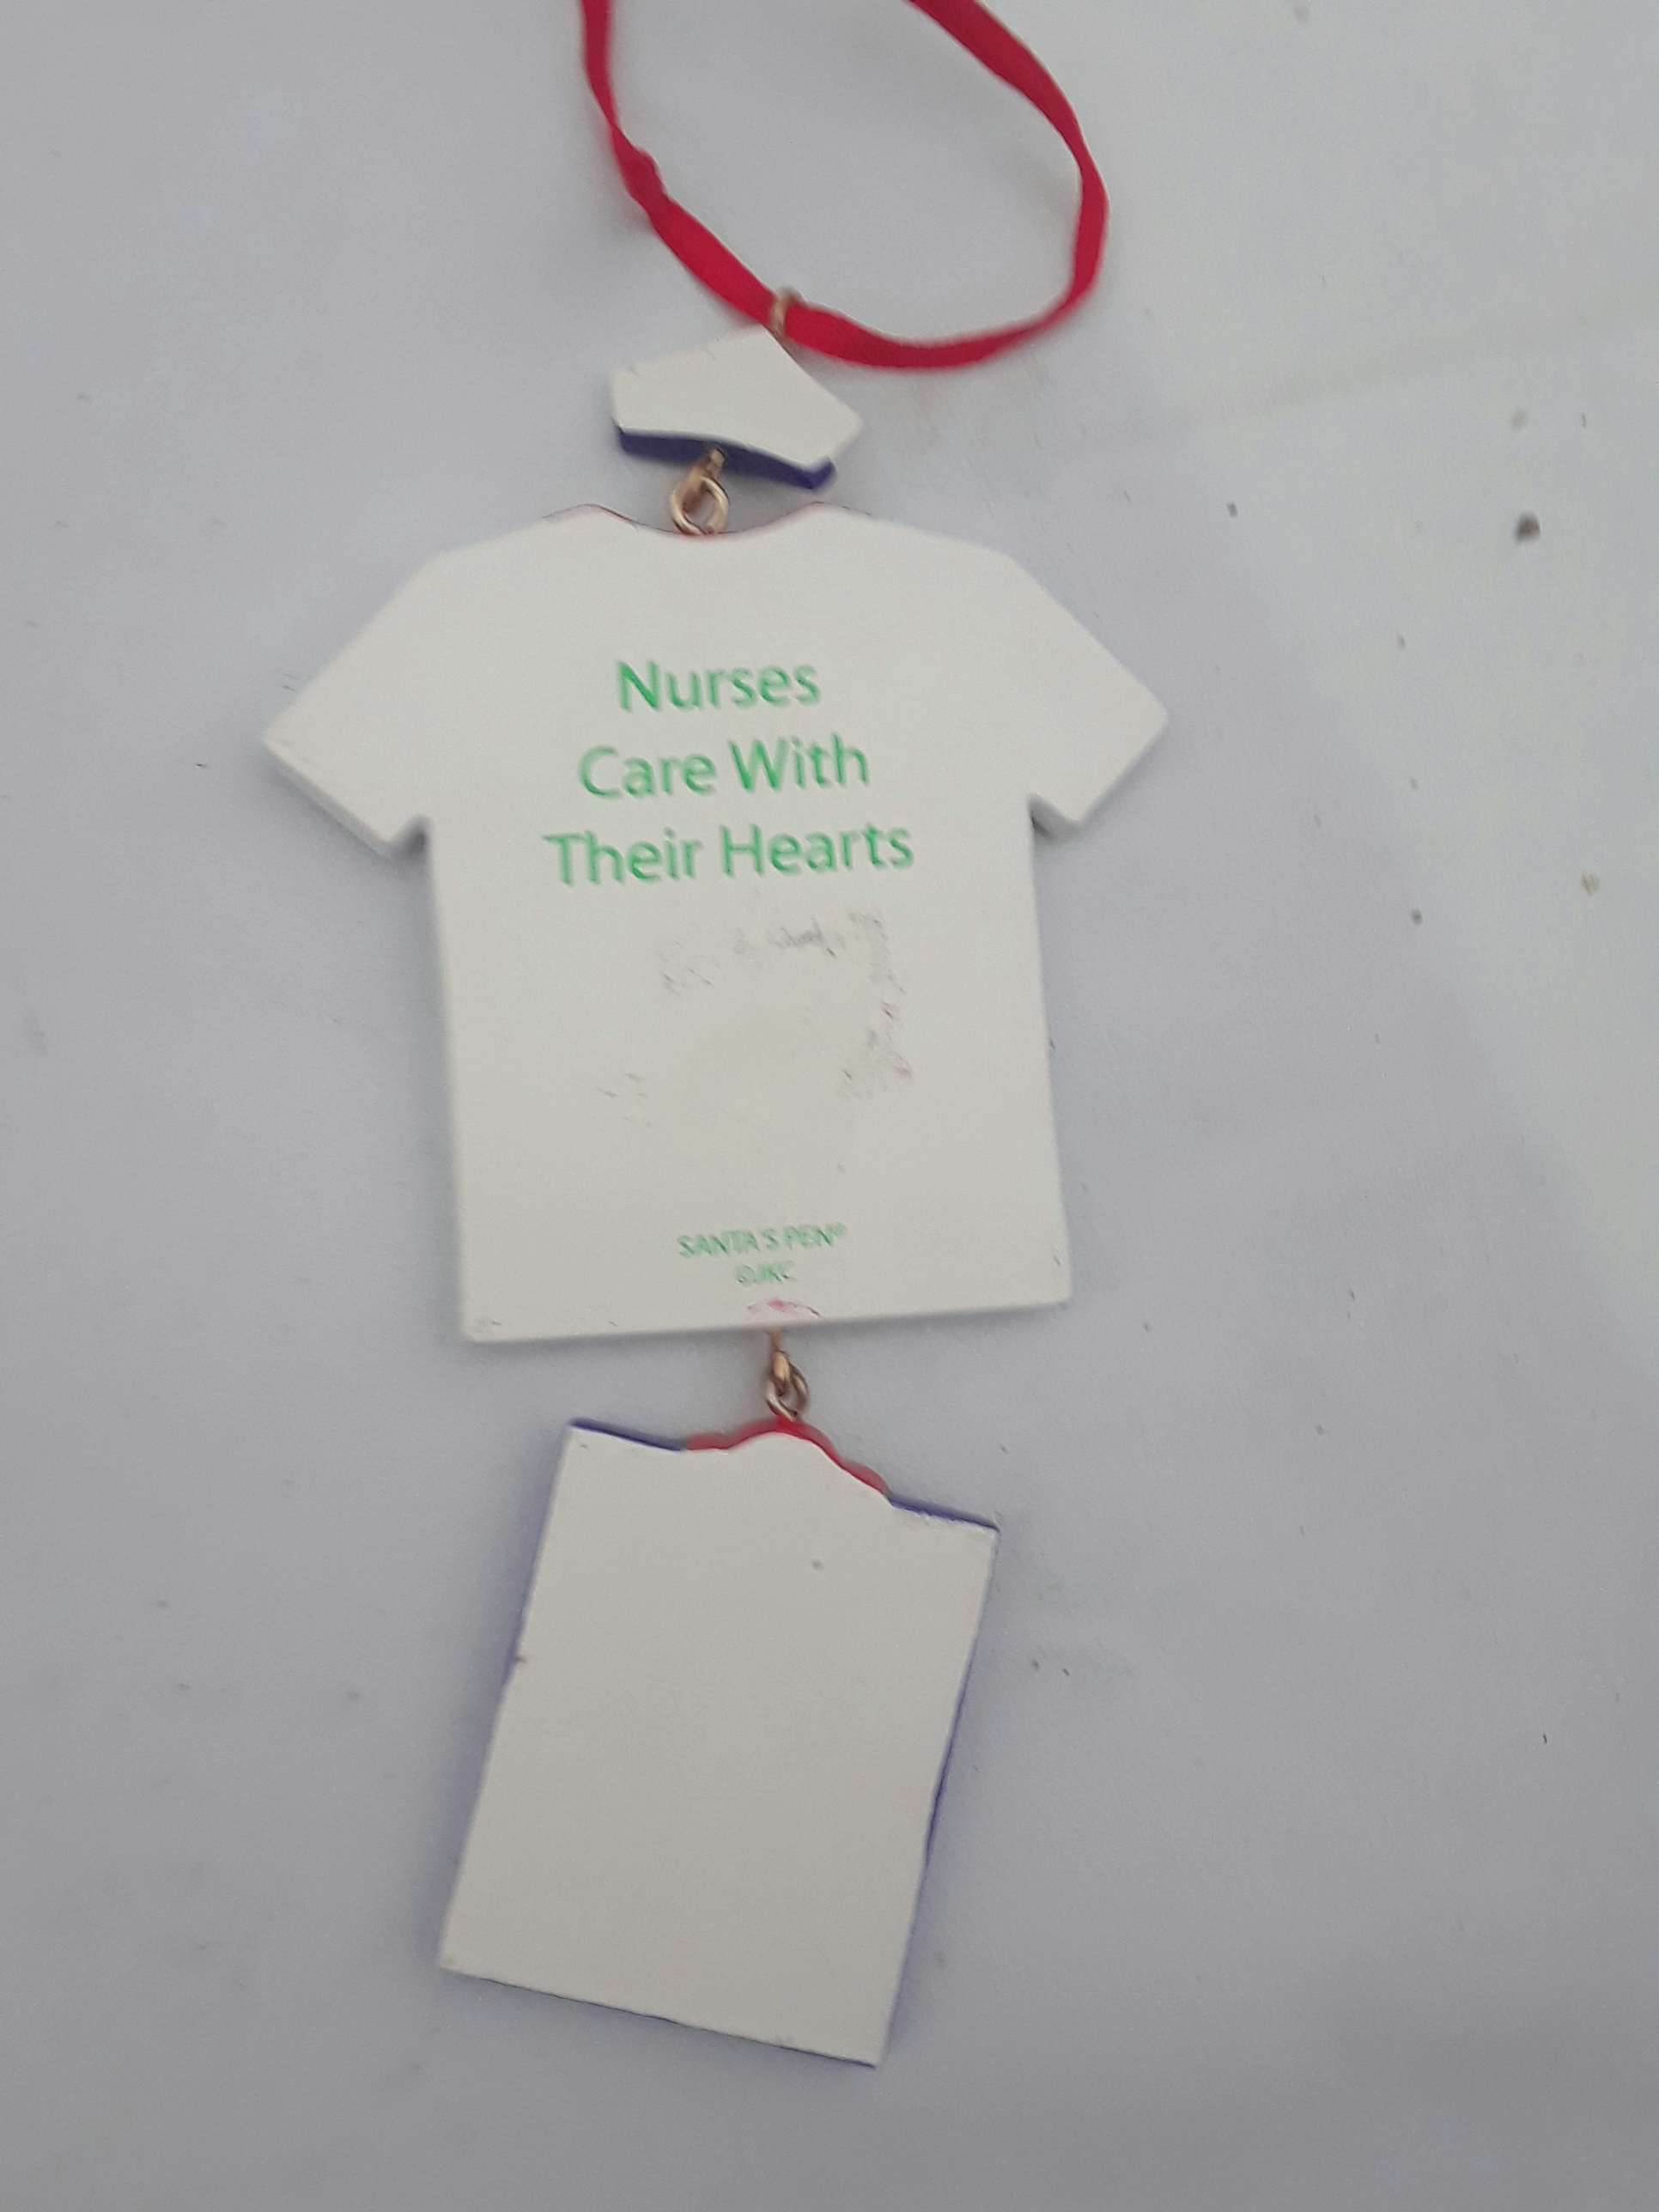 Nurses Care With Their Hearts Ornament by Santas Pen